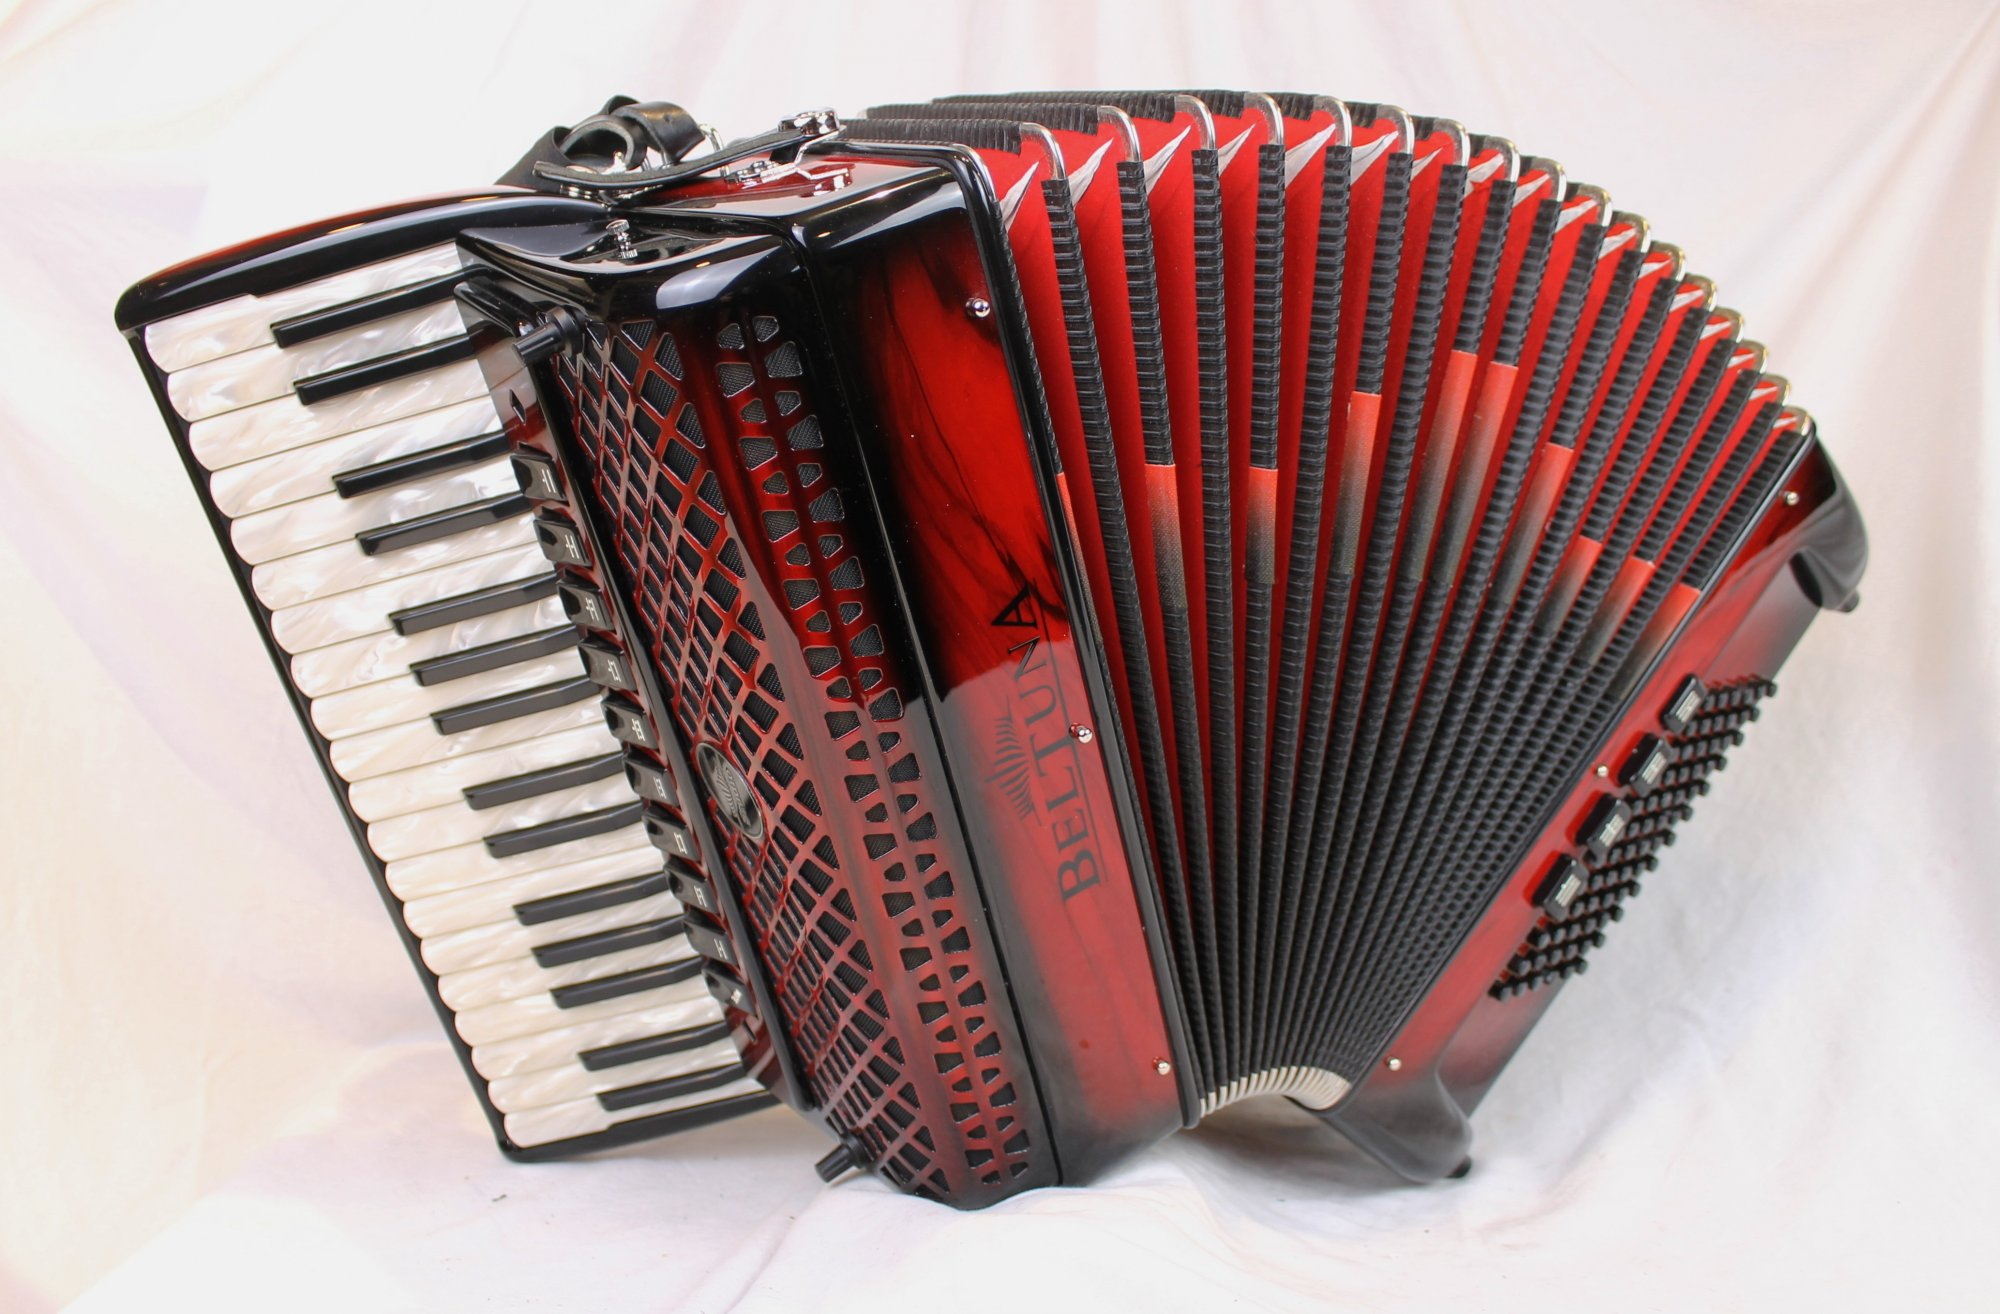 3869 - Certified Pre-Owned Red Shadow Beltuna Studio IV Piano Accordion LMMM 34 72